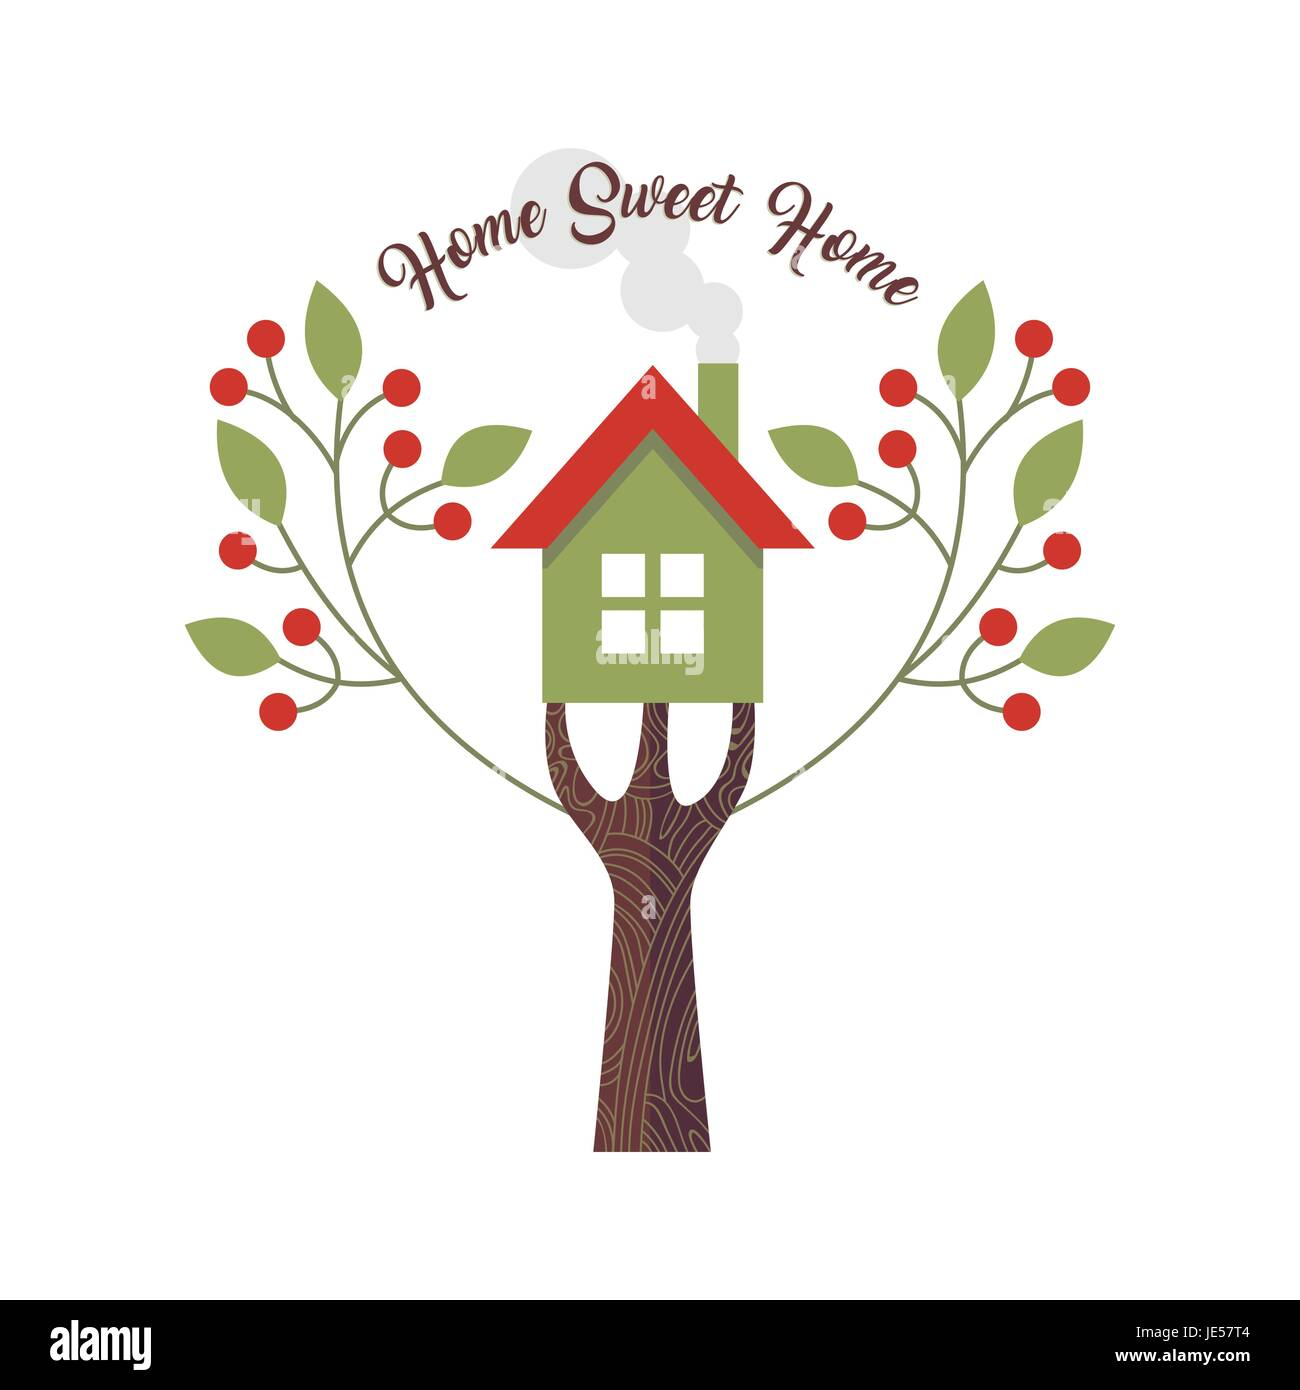 Home sweet home love quote design with concept illustration of house and tree. EPS10 vector. - Stock Vector